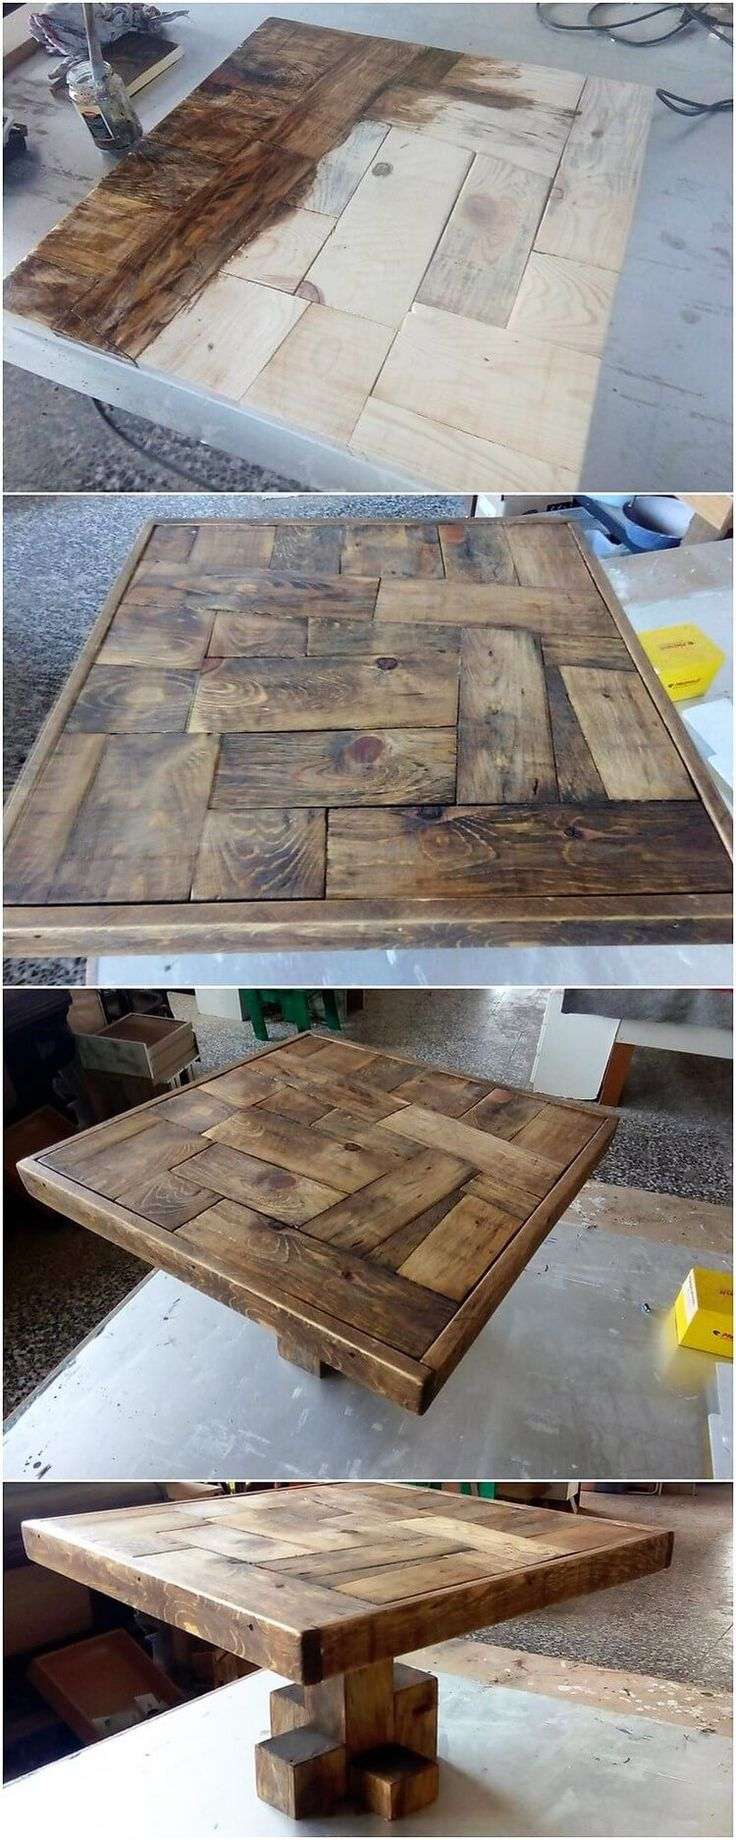 Much an elegant designing of the table is carried out with the wood pallet use. A perfect choice for the coffee serving arrangement! It is made overall attractive through the additional effect of the center textured impact of the designs being improvised in it.